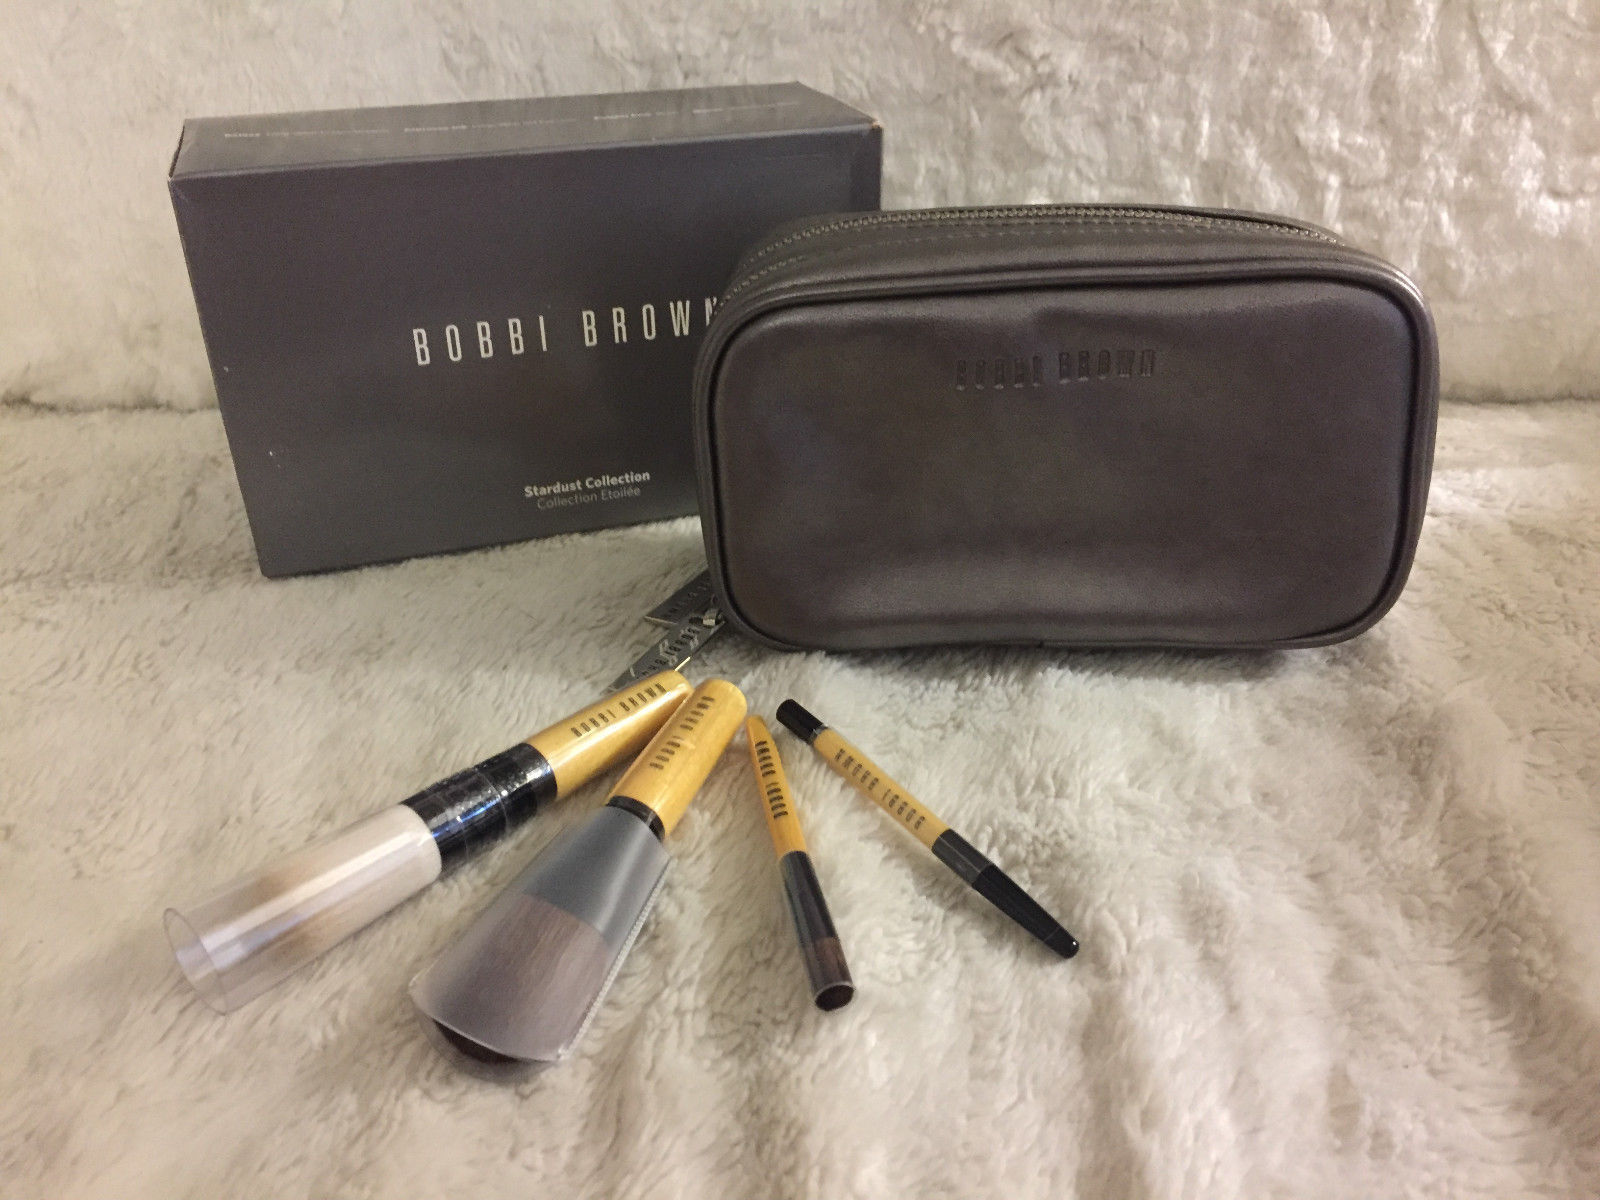 Primary image for NIB Bobbi Brown Stardust Collection 4pcs Mini Brush Set, Face Blender/Blush/Eye